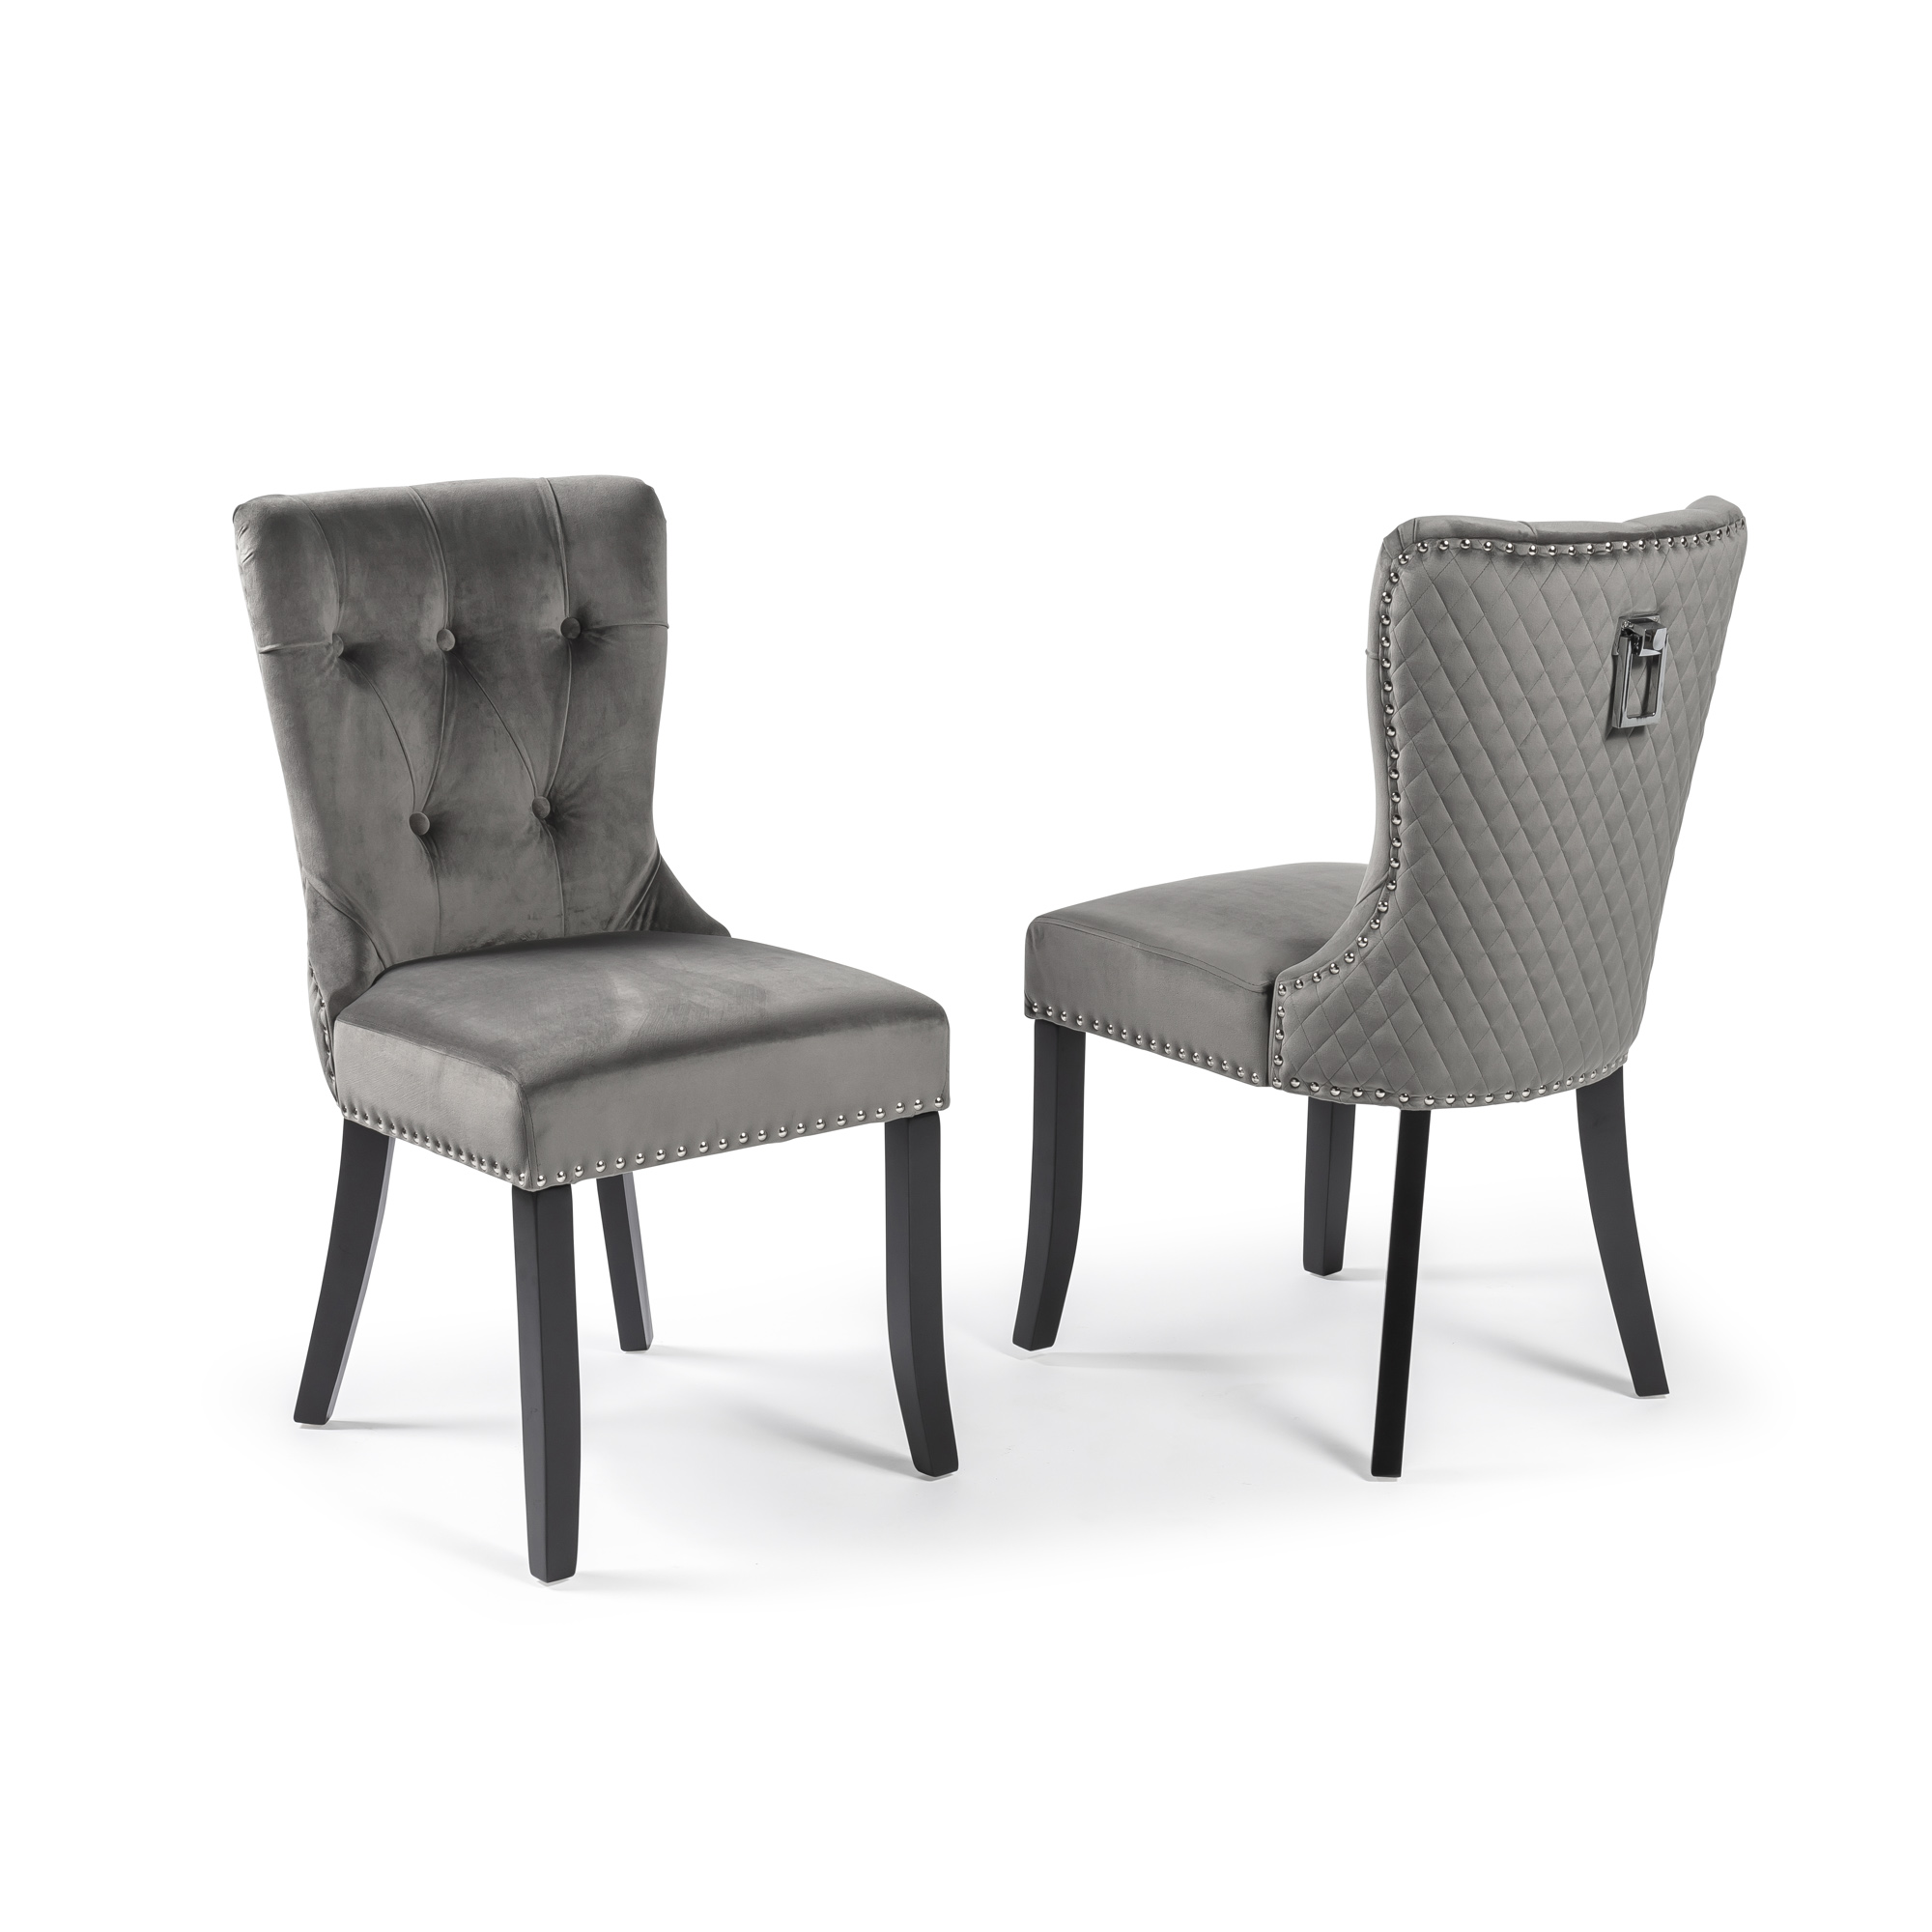 Grey Brushed Dining Chair with Black Legs (Set of 2)